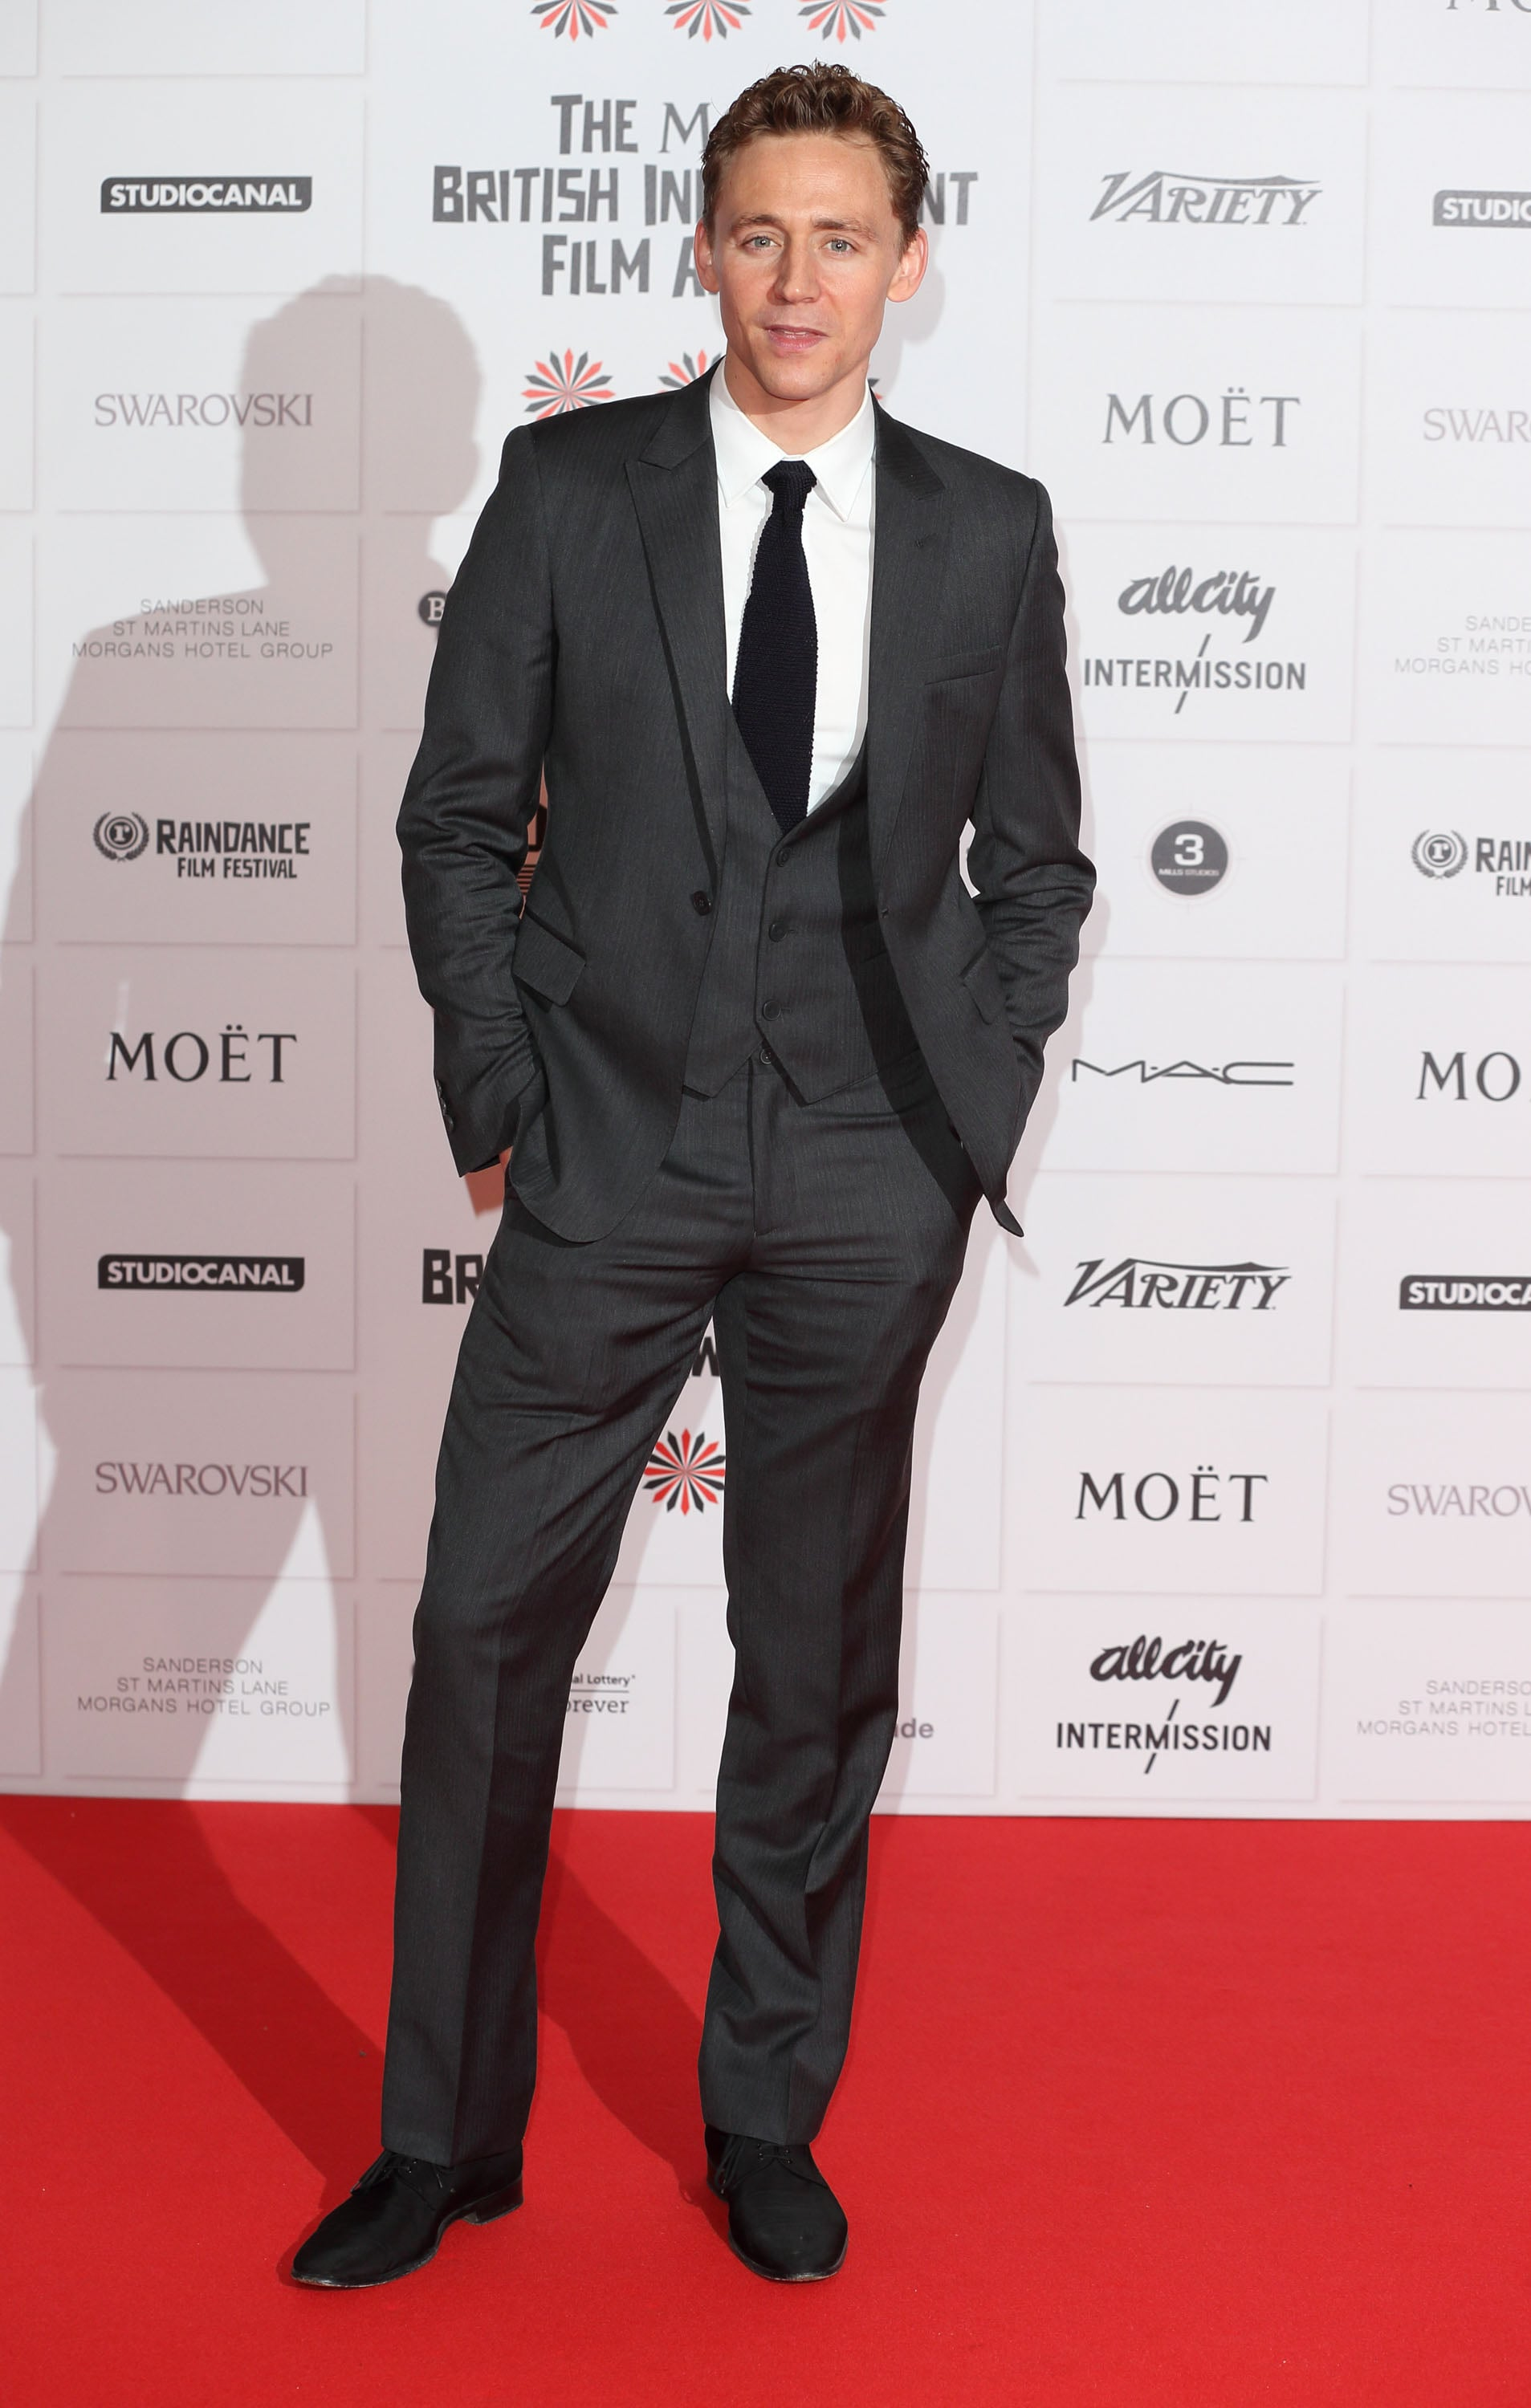 Tom Hiddleston posed on the red carpet.